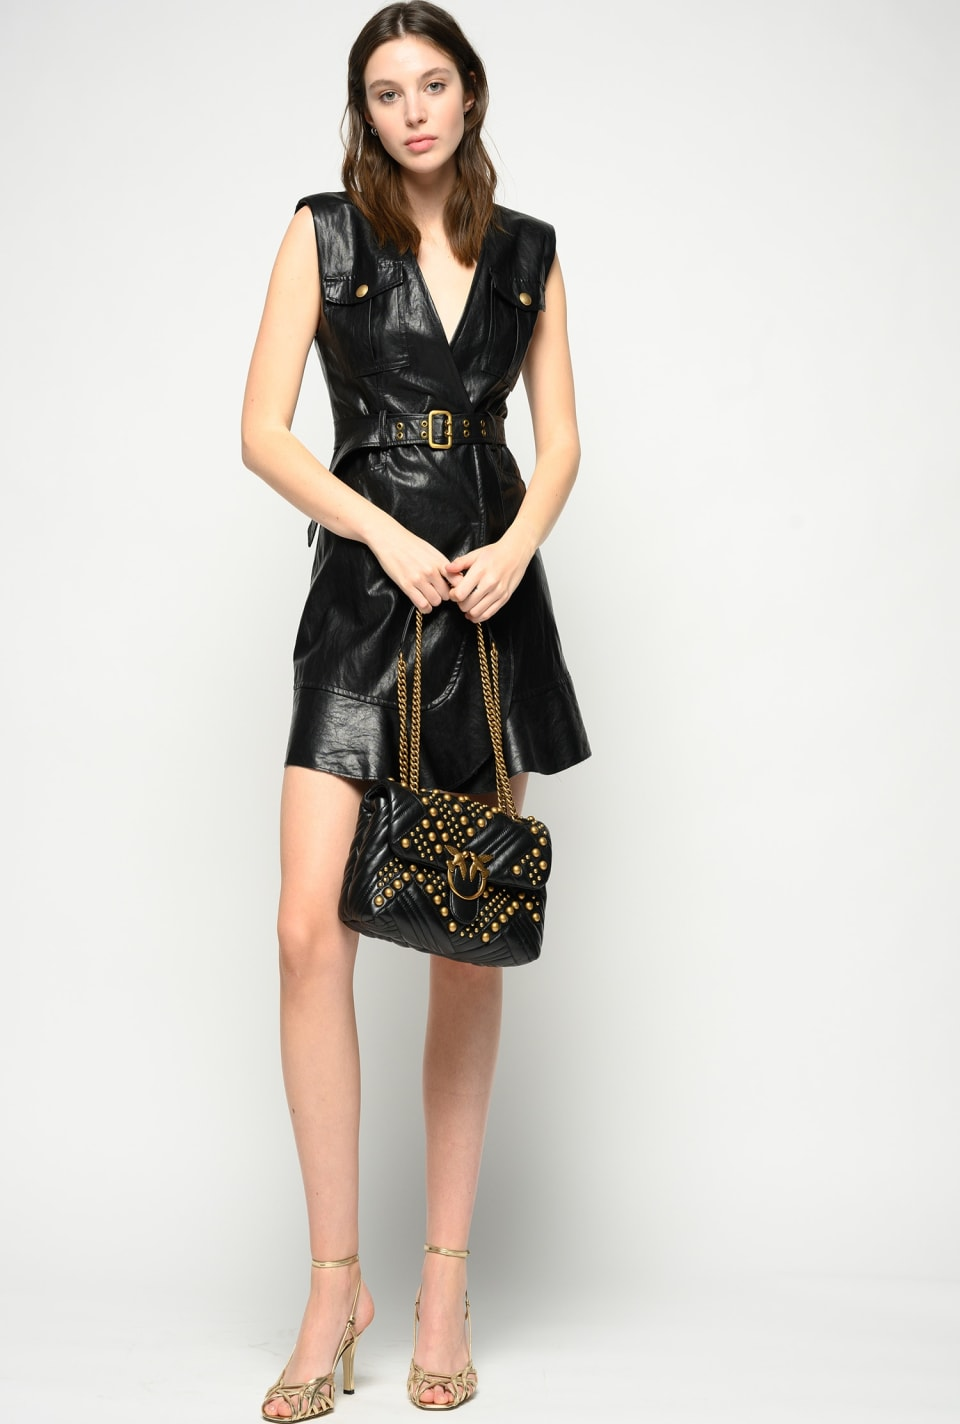 Washed leather-look dress - Pinko